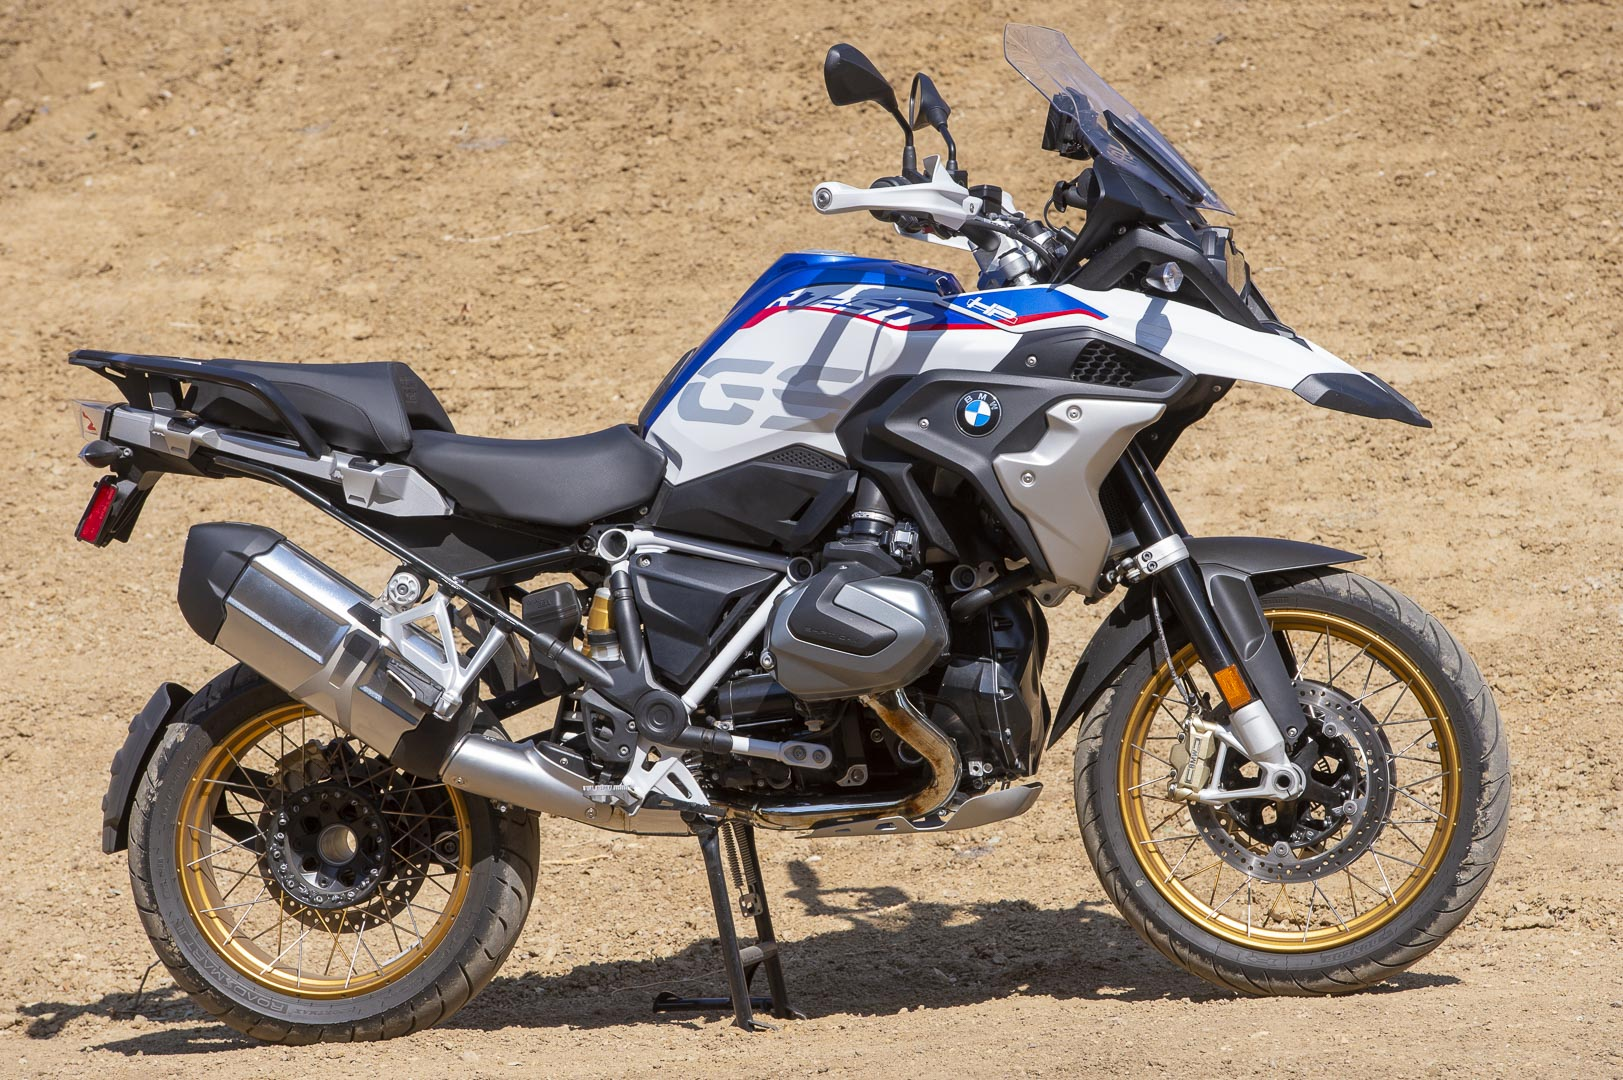 2019 BMW R1250GS protection